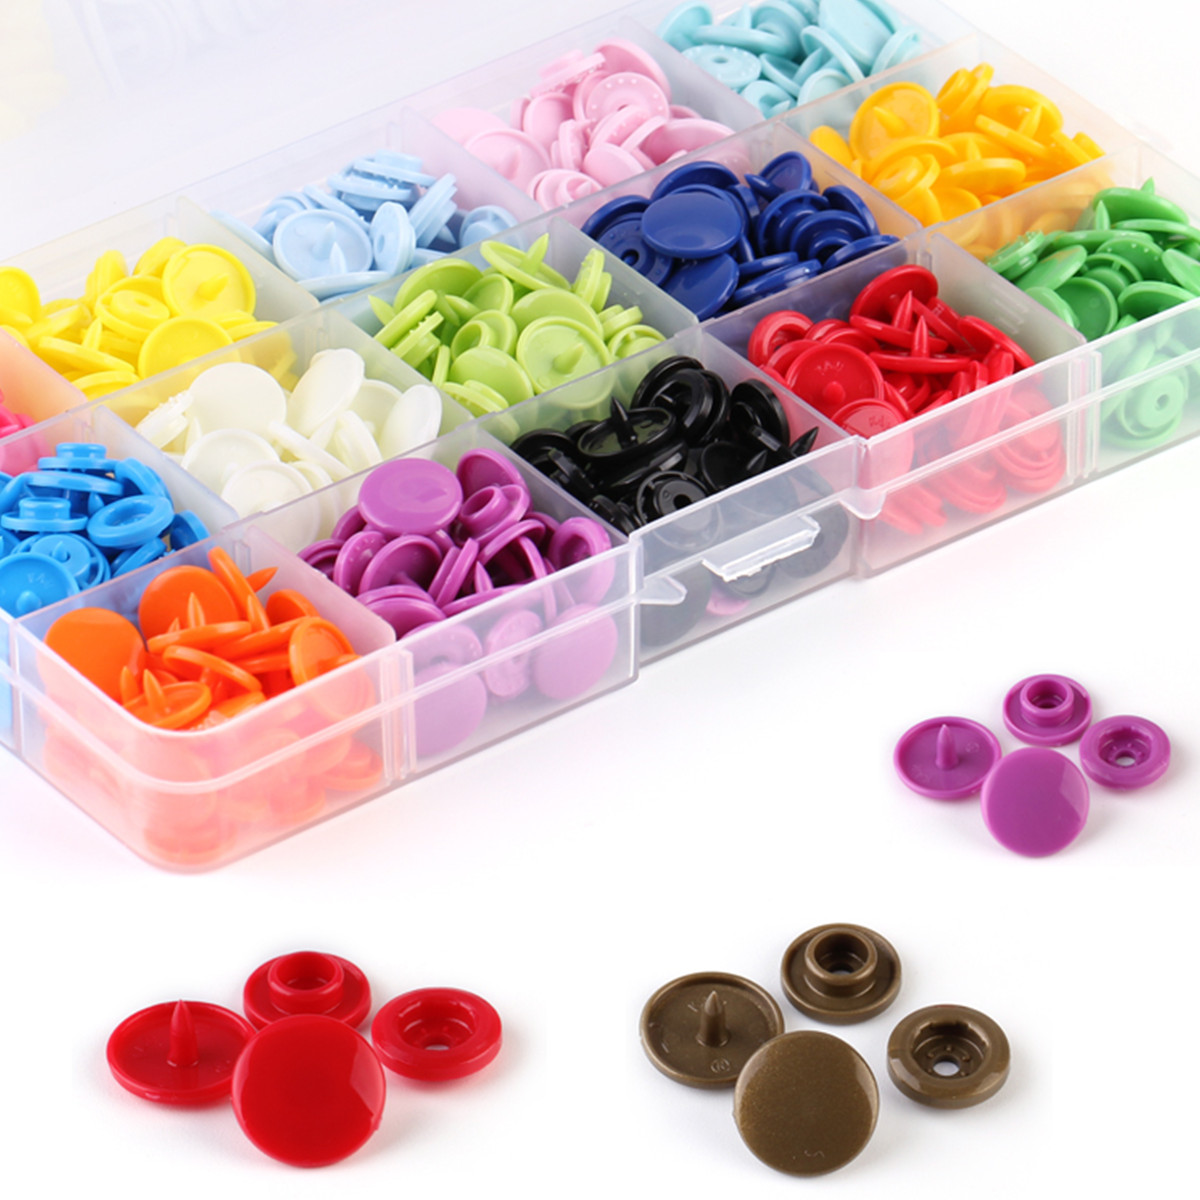 Snap Button Kit of 400 Pcs Plastic Snap Fastener with Snap Plier for Clothing Sewing Crafting Storage Box Included 24 Colors